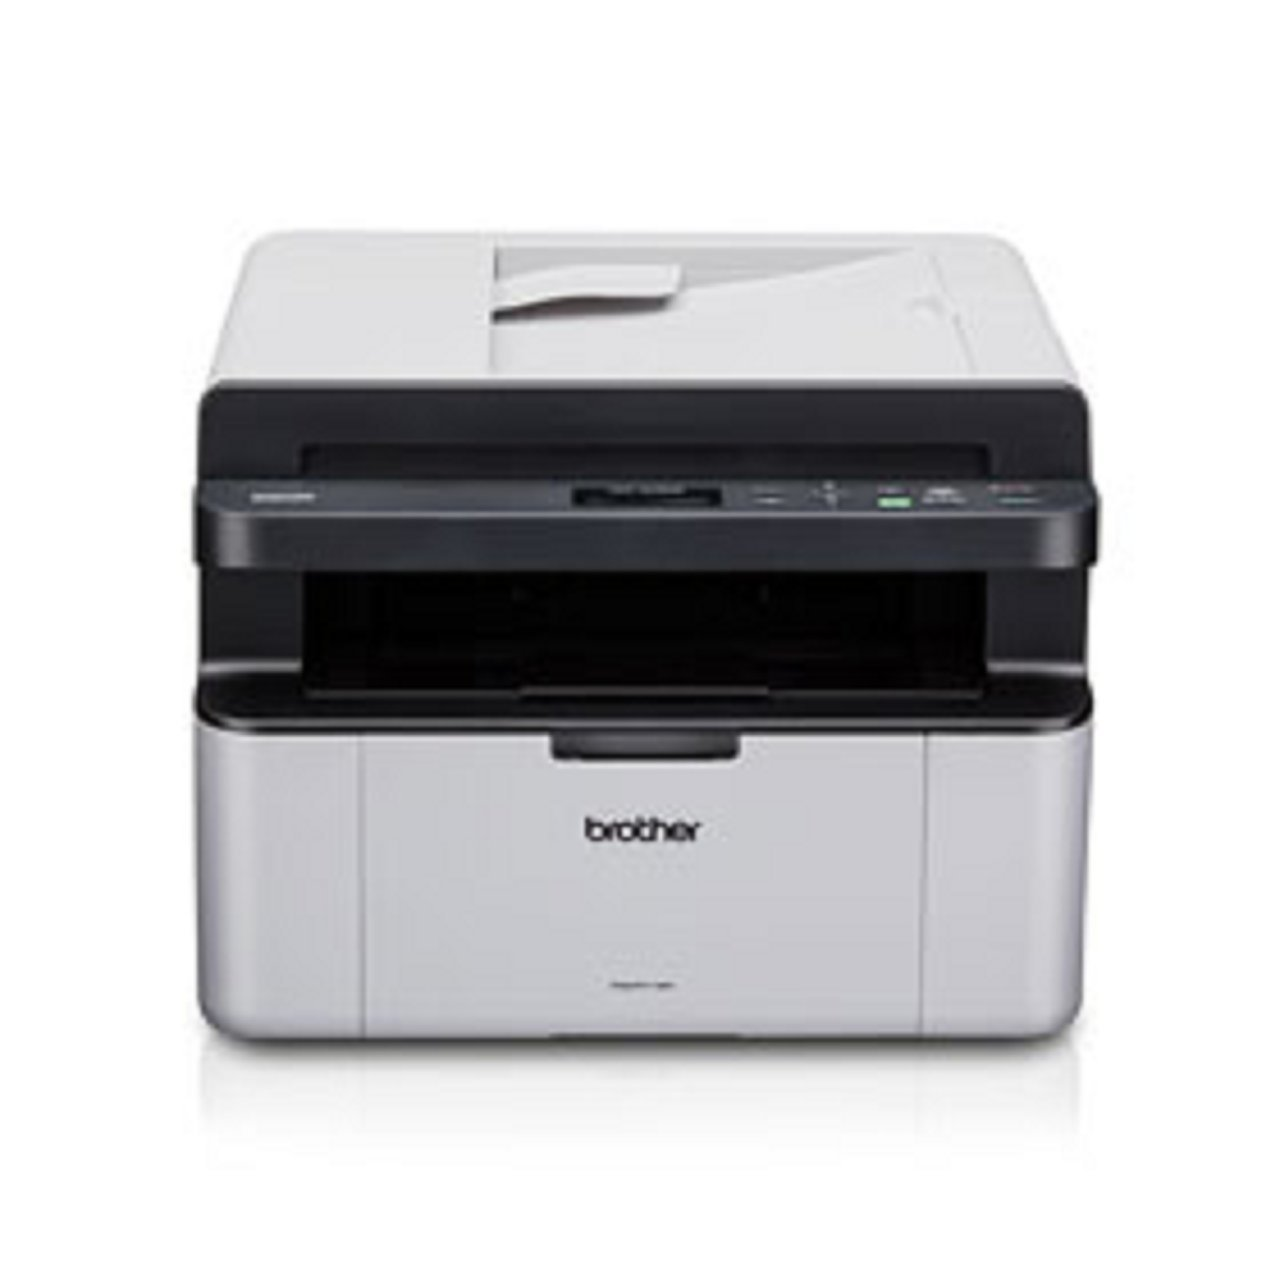 Buy Brother Dcp 1616nw Monochrome Wifi Multifunction Circuit Diagram Wireless Printer Laser Online At Low Prices In India Reviews Ratings